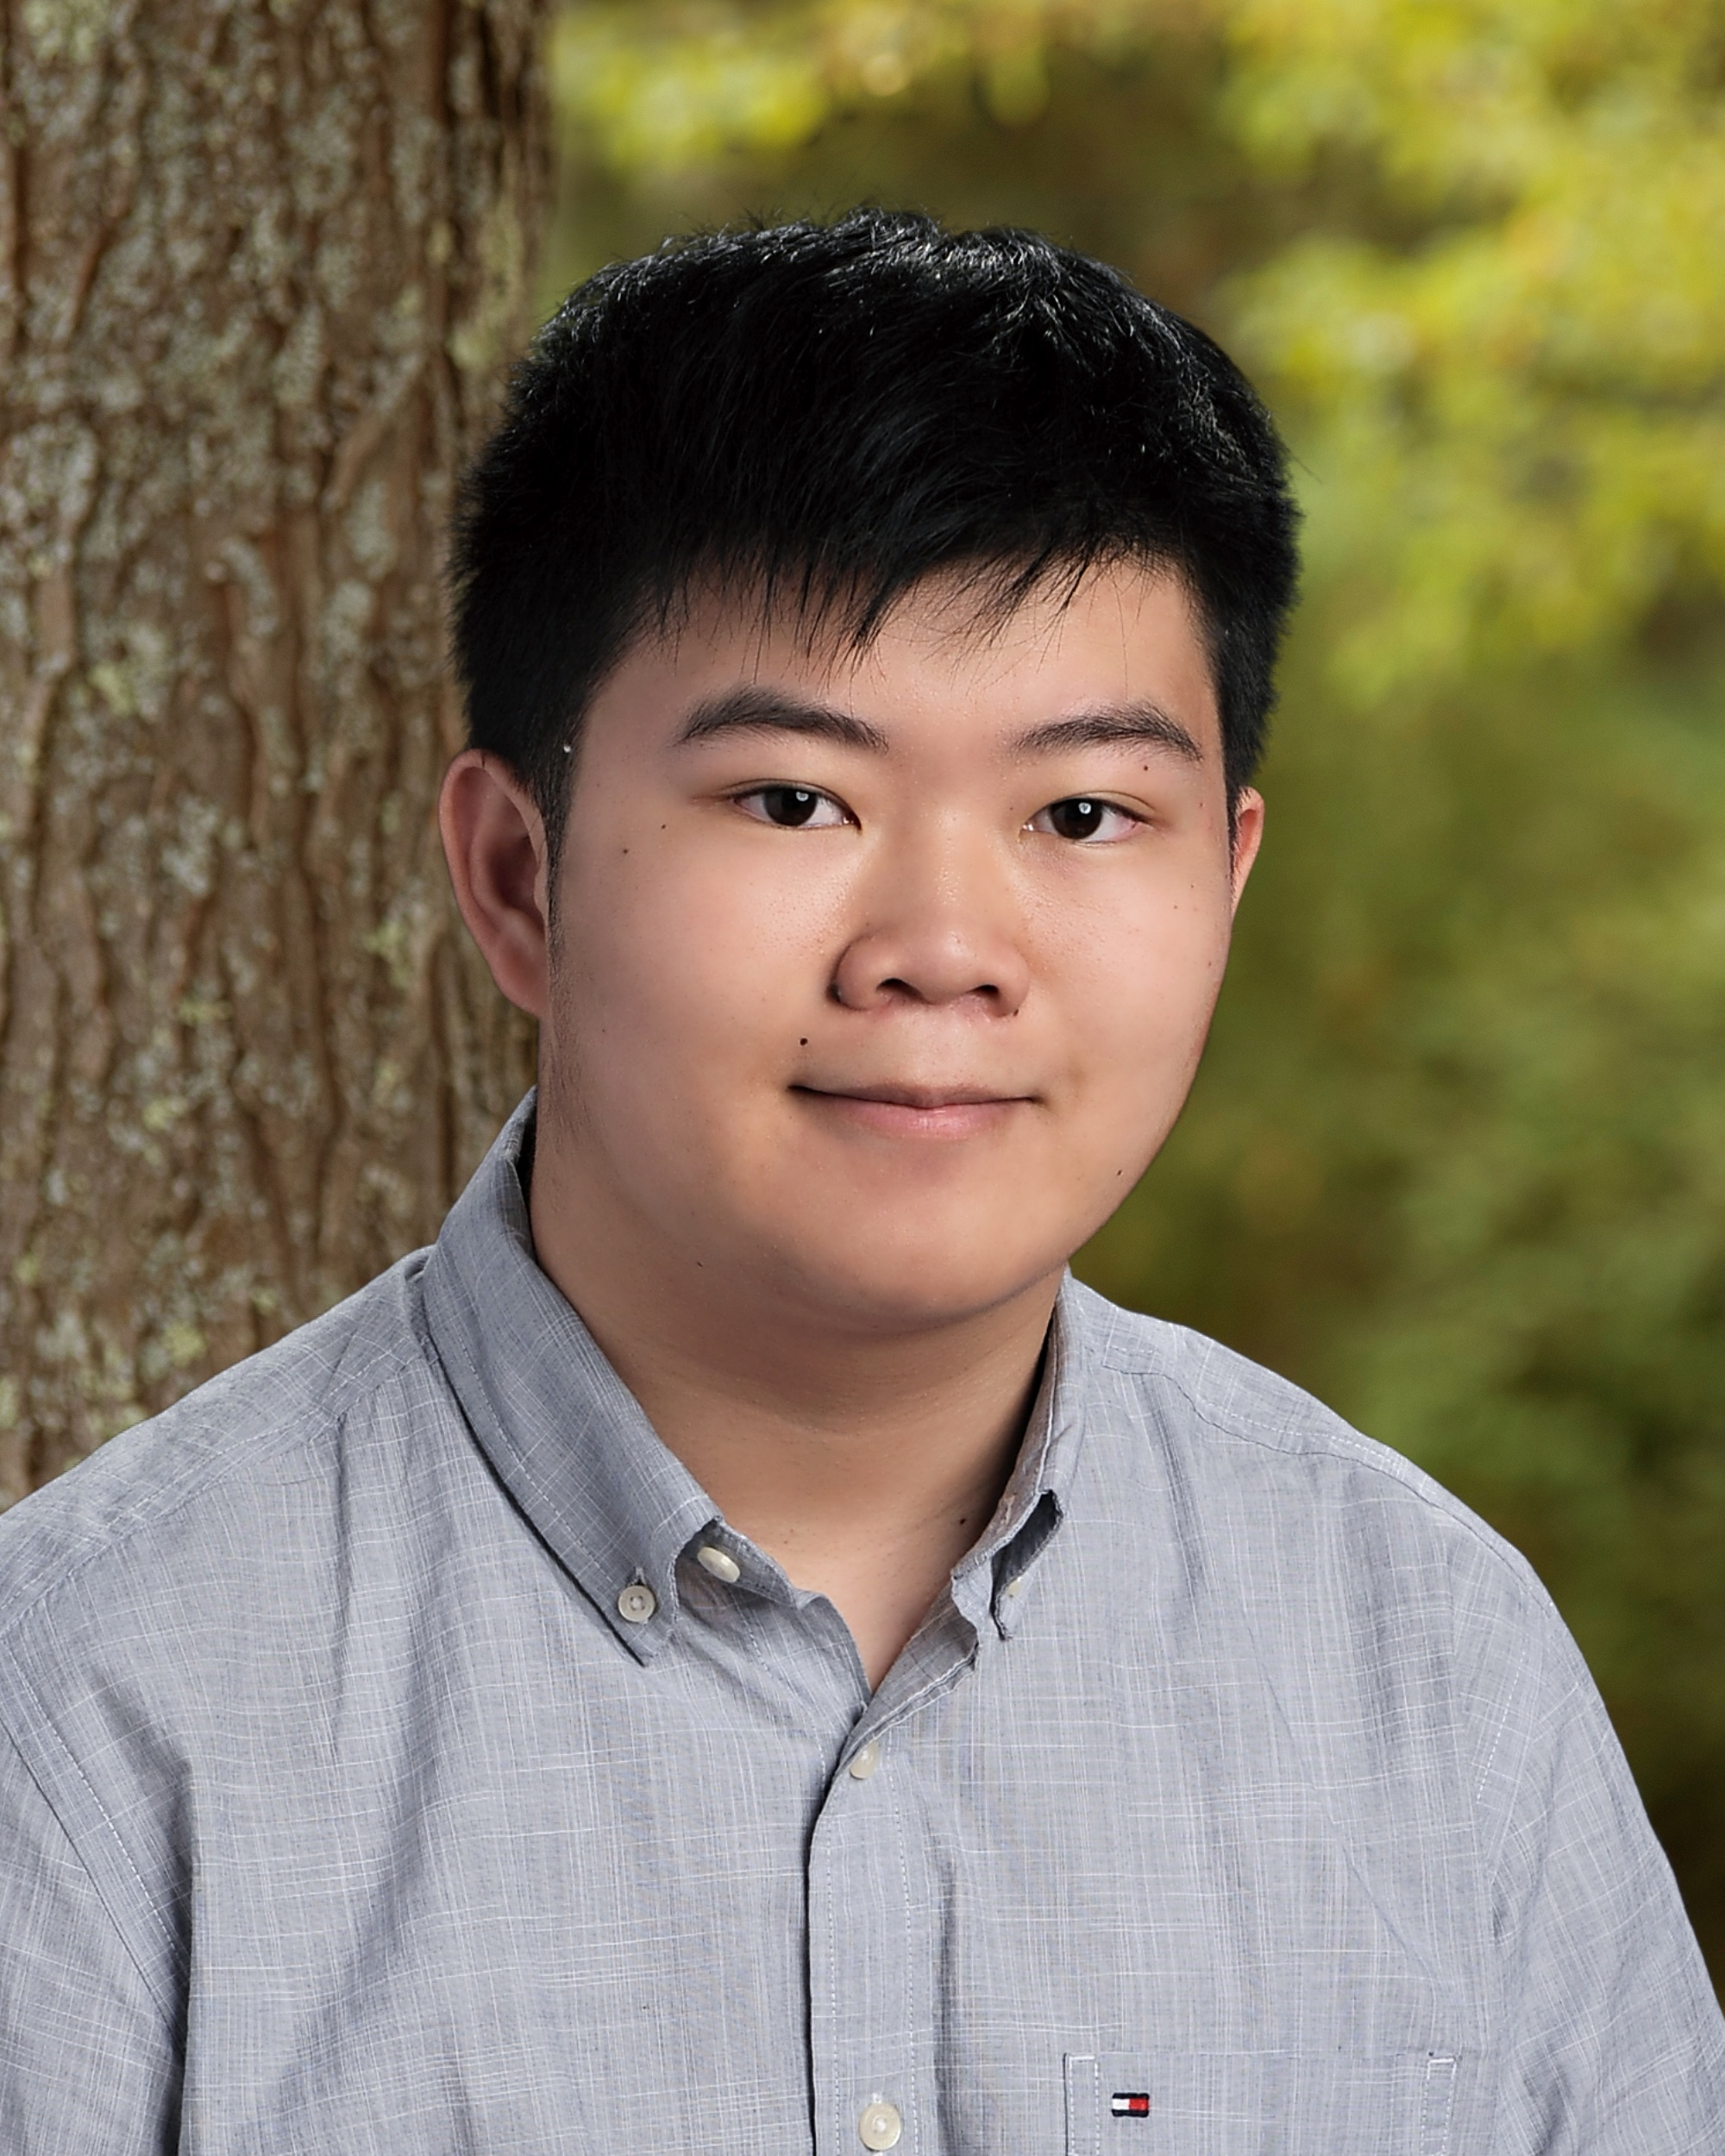 Terence Lee, rising sophomore at University of Illinois, Urbana-Champaign, Founder of EqOpTech